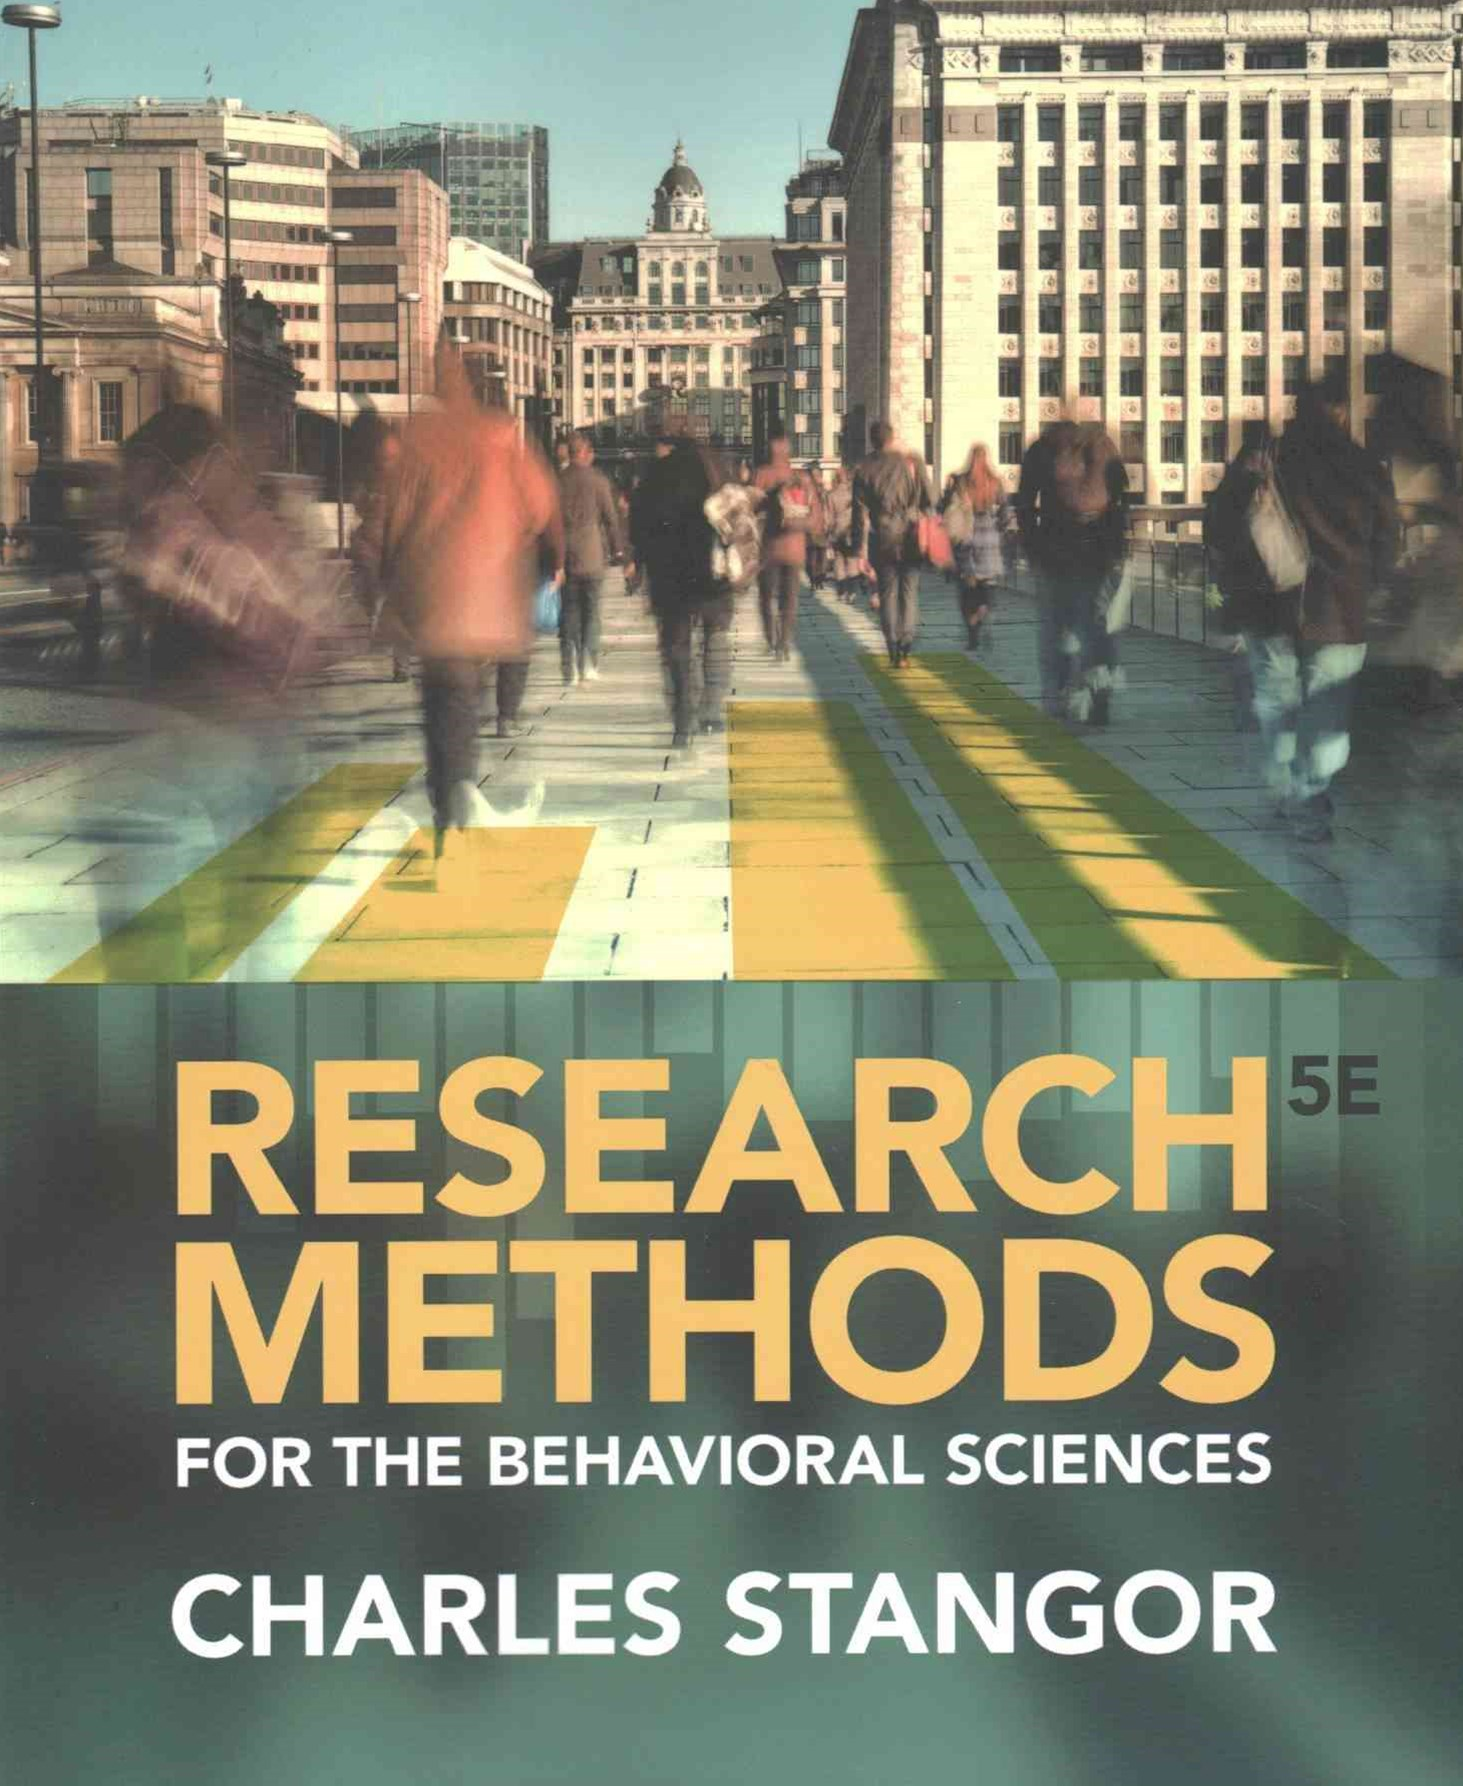 Bundle: Research Methods for the Behavioral Sciences, 5th + IBM SPSS Statistics Student Version 21.